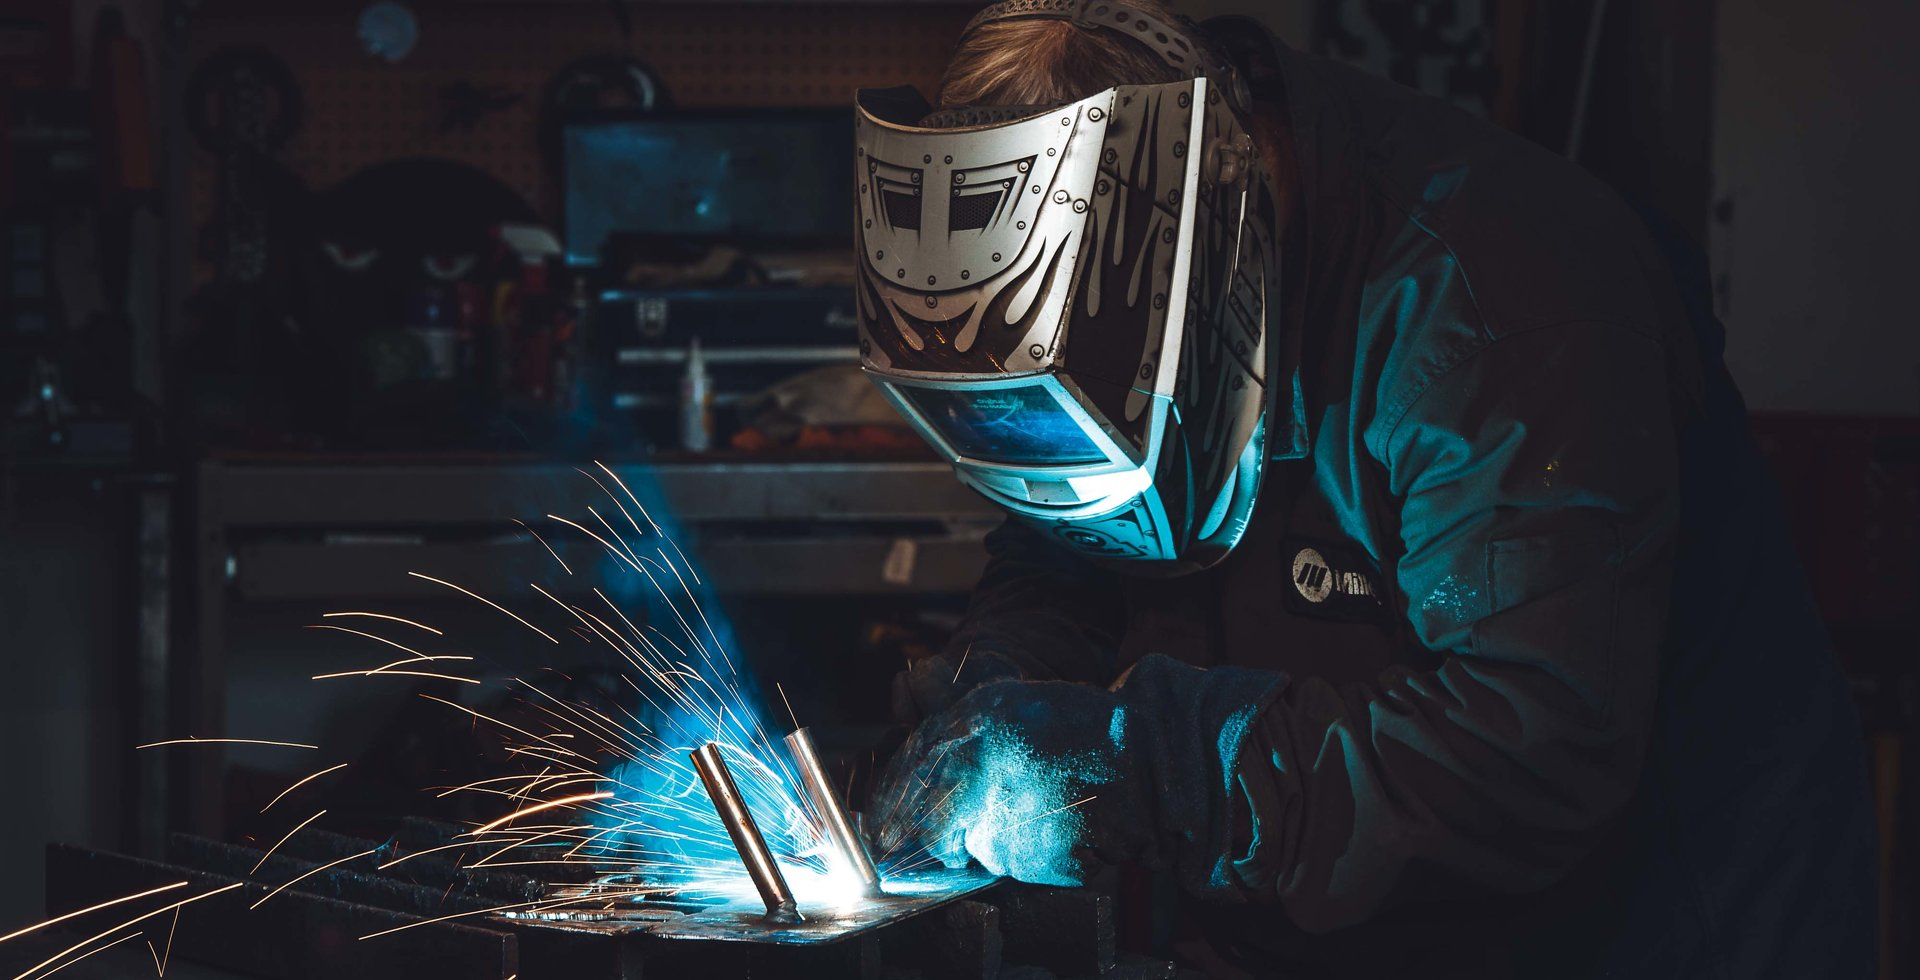 Far from the X-ray machine, Mark Belles indulges in some signature craftmanship while welding a new creation in his garage-turned-workshop.